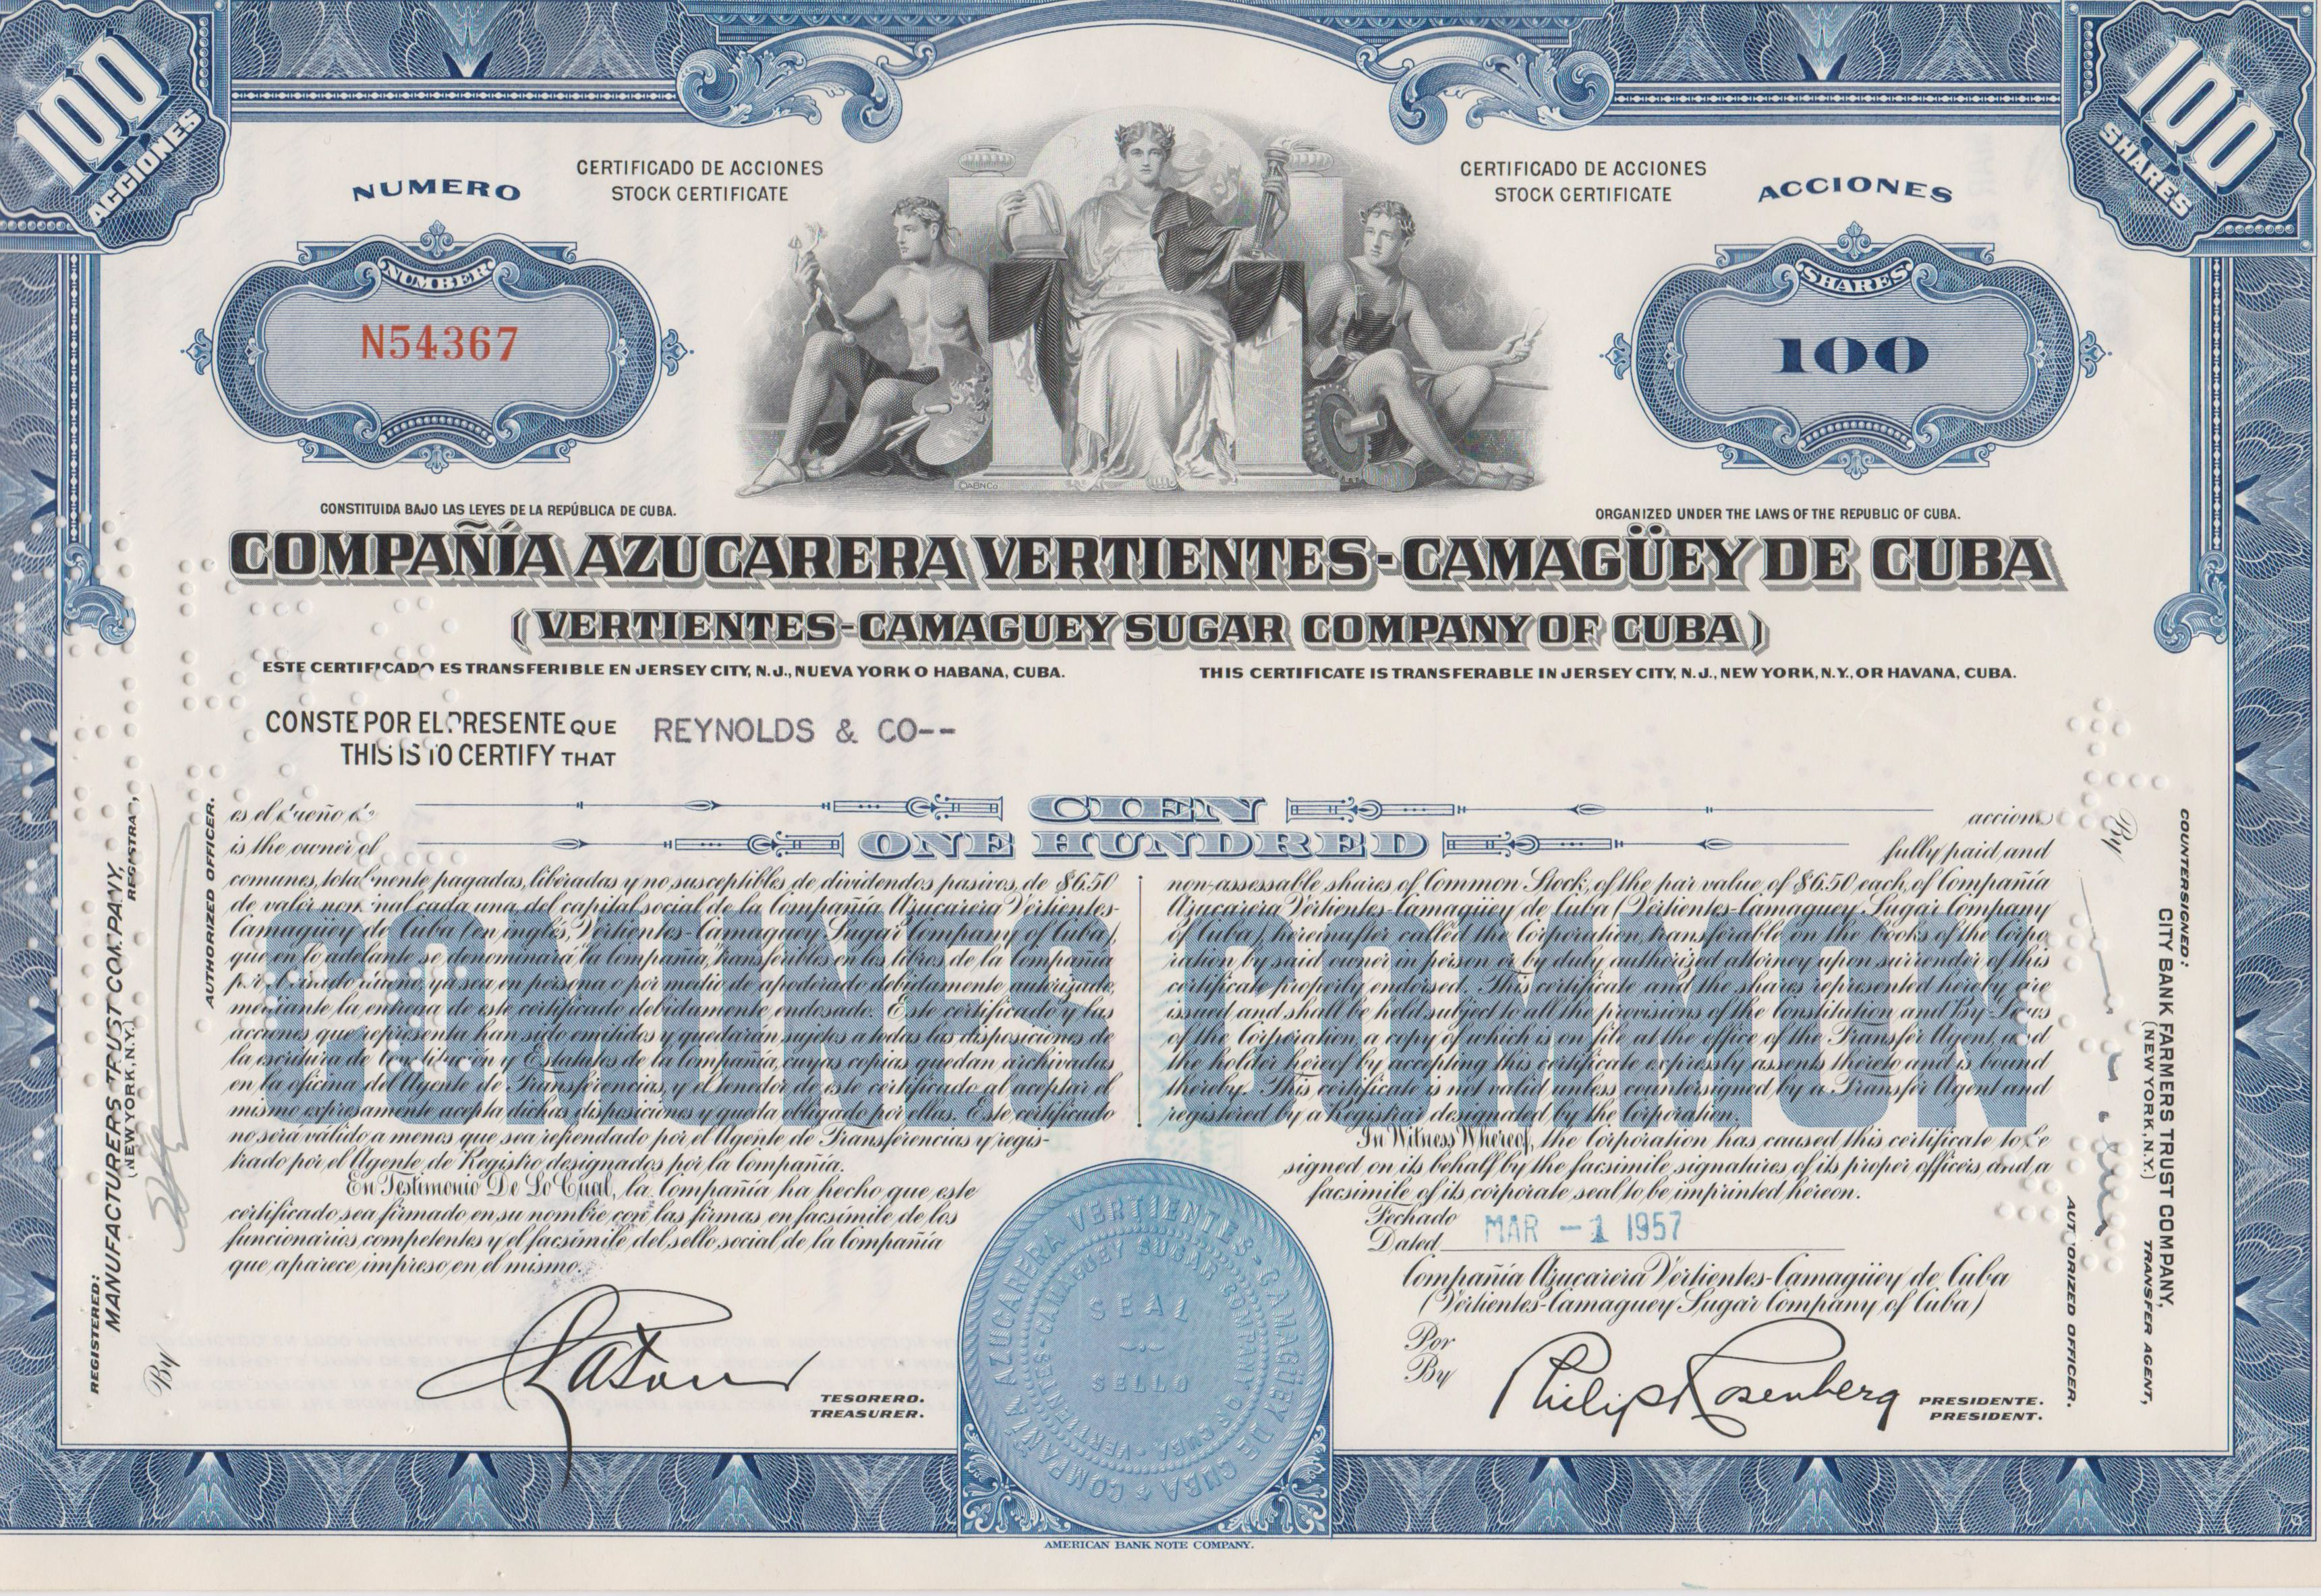 Cuba Sugar Company Stock Certificate Vertientes 100 Acciones Used Stock Certificates Social Security Card Cuba